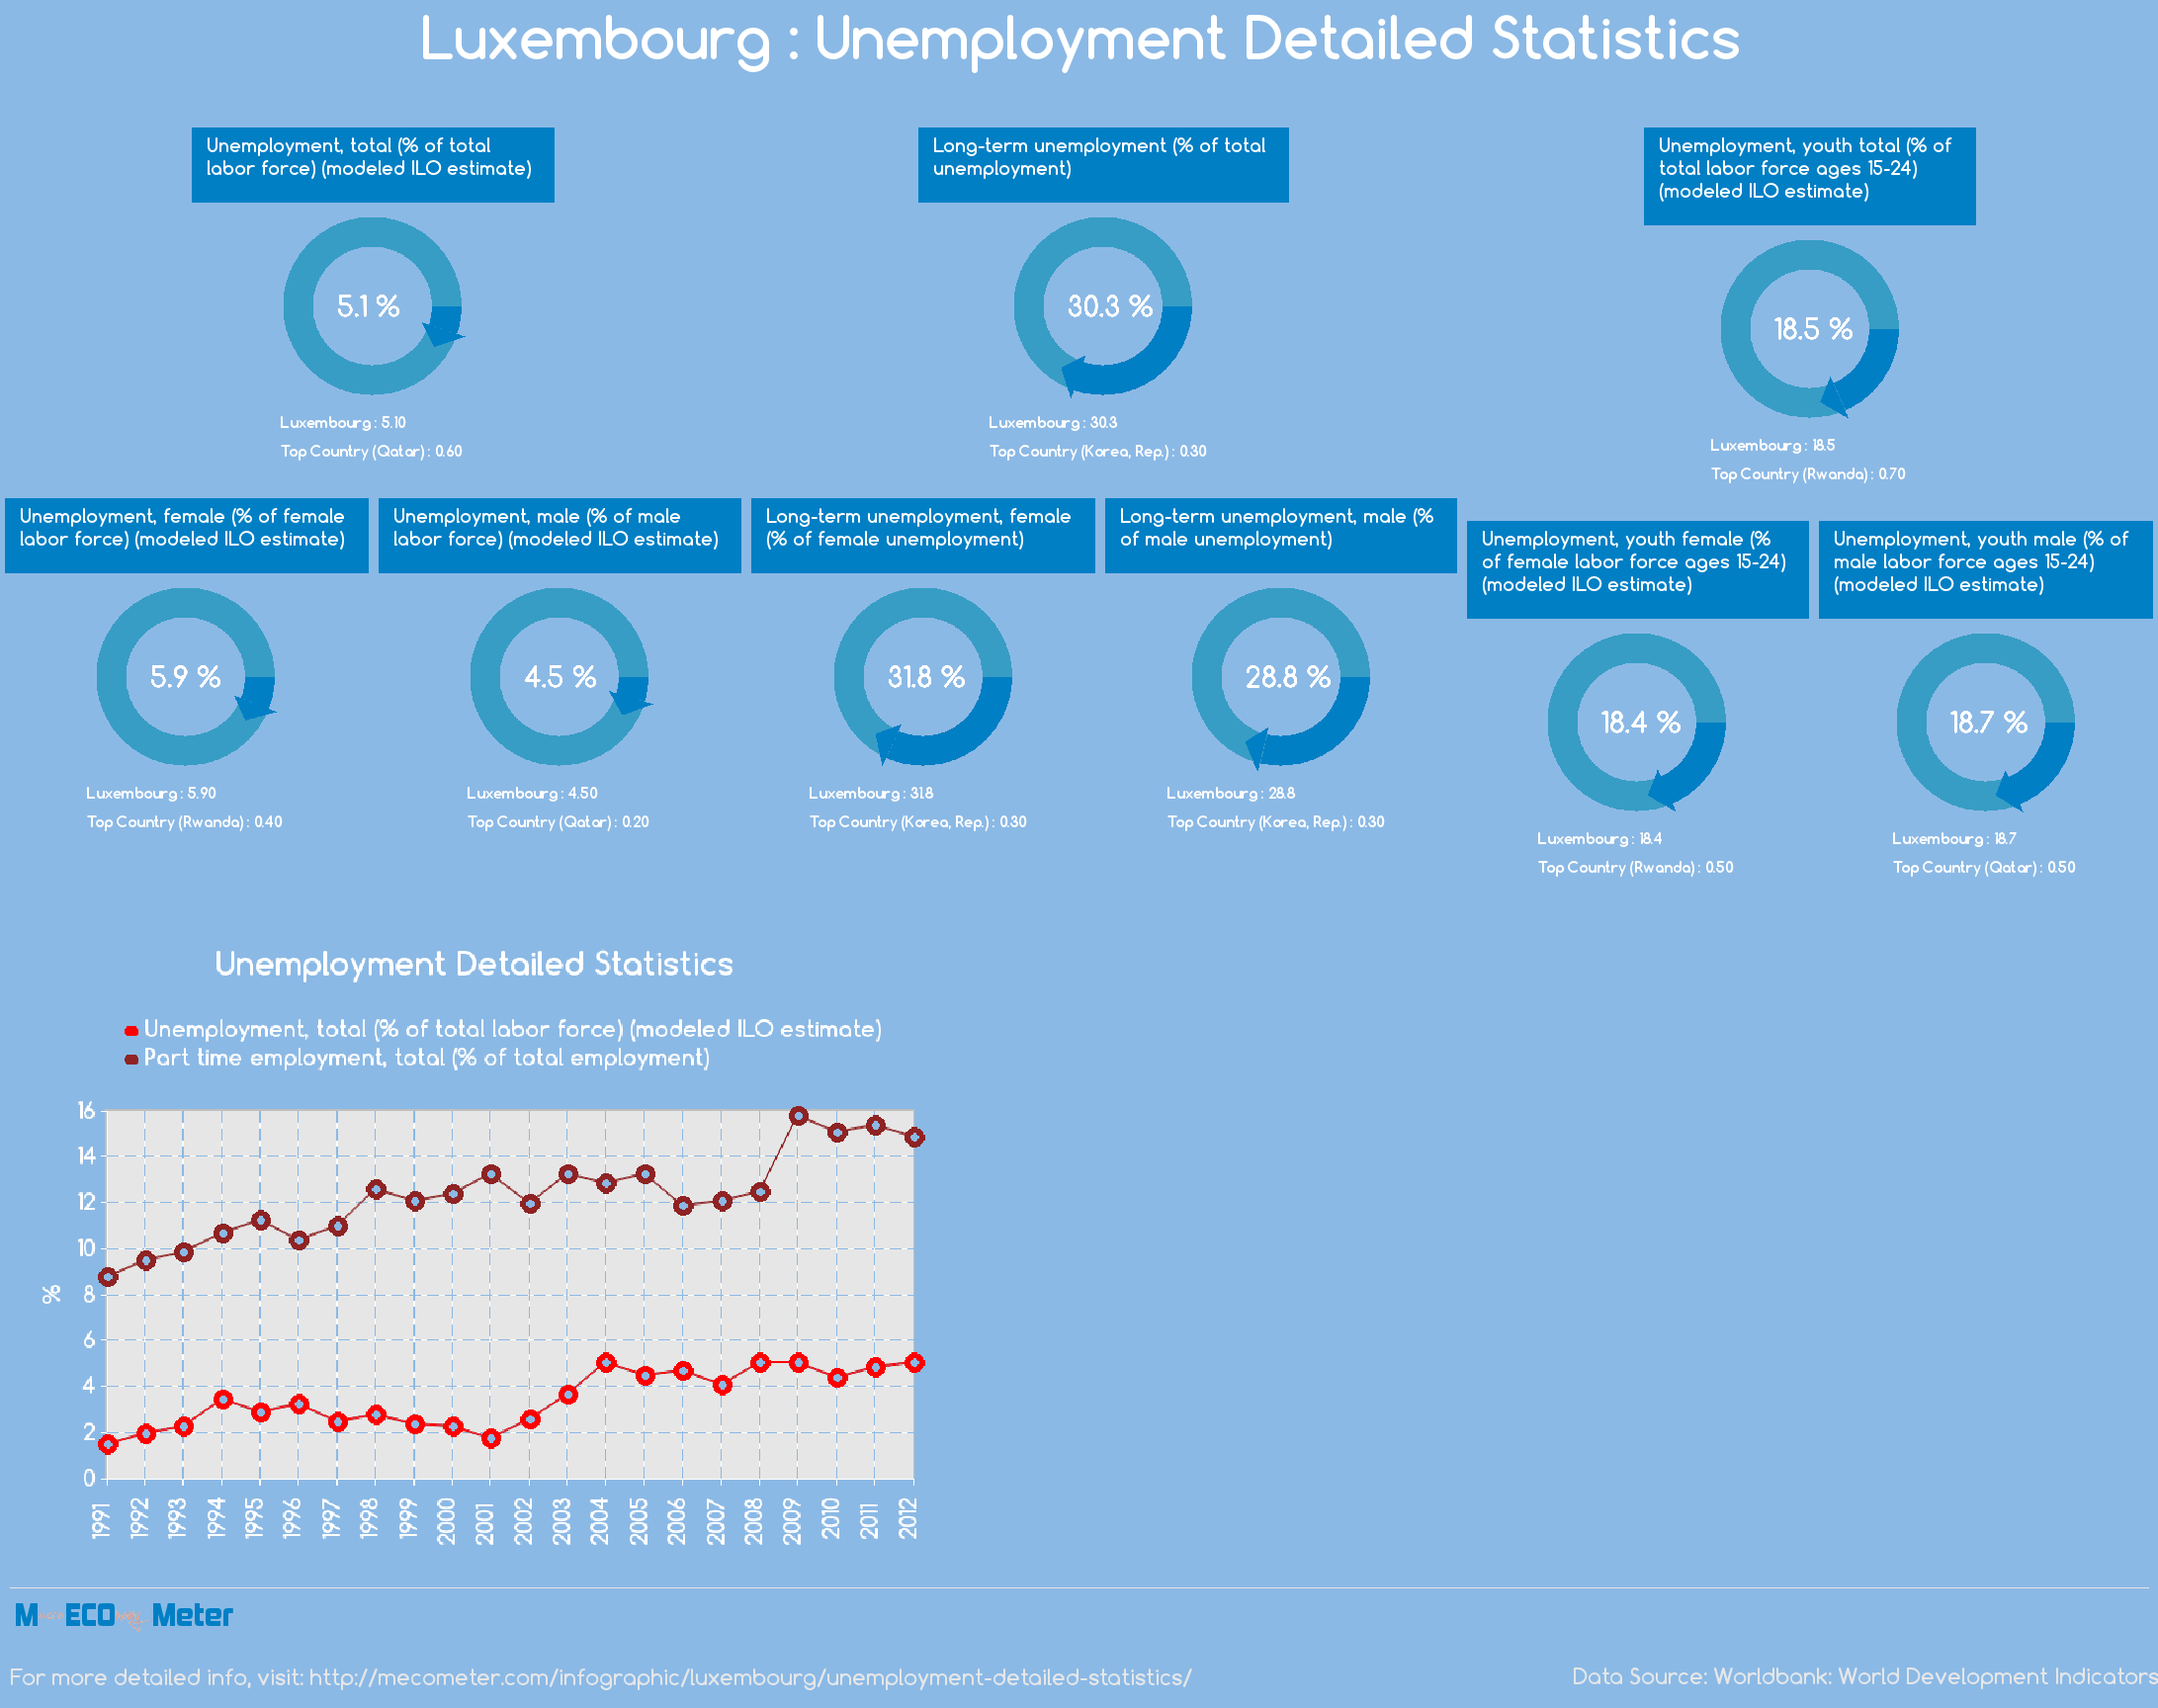 Luxembourg : Unemployment Detailed Statistics